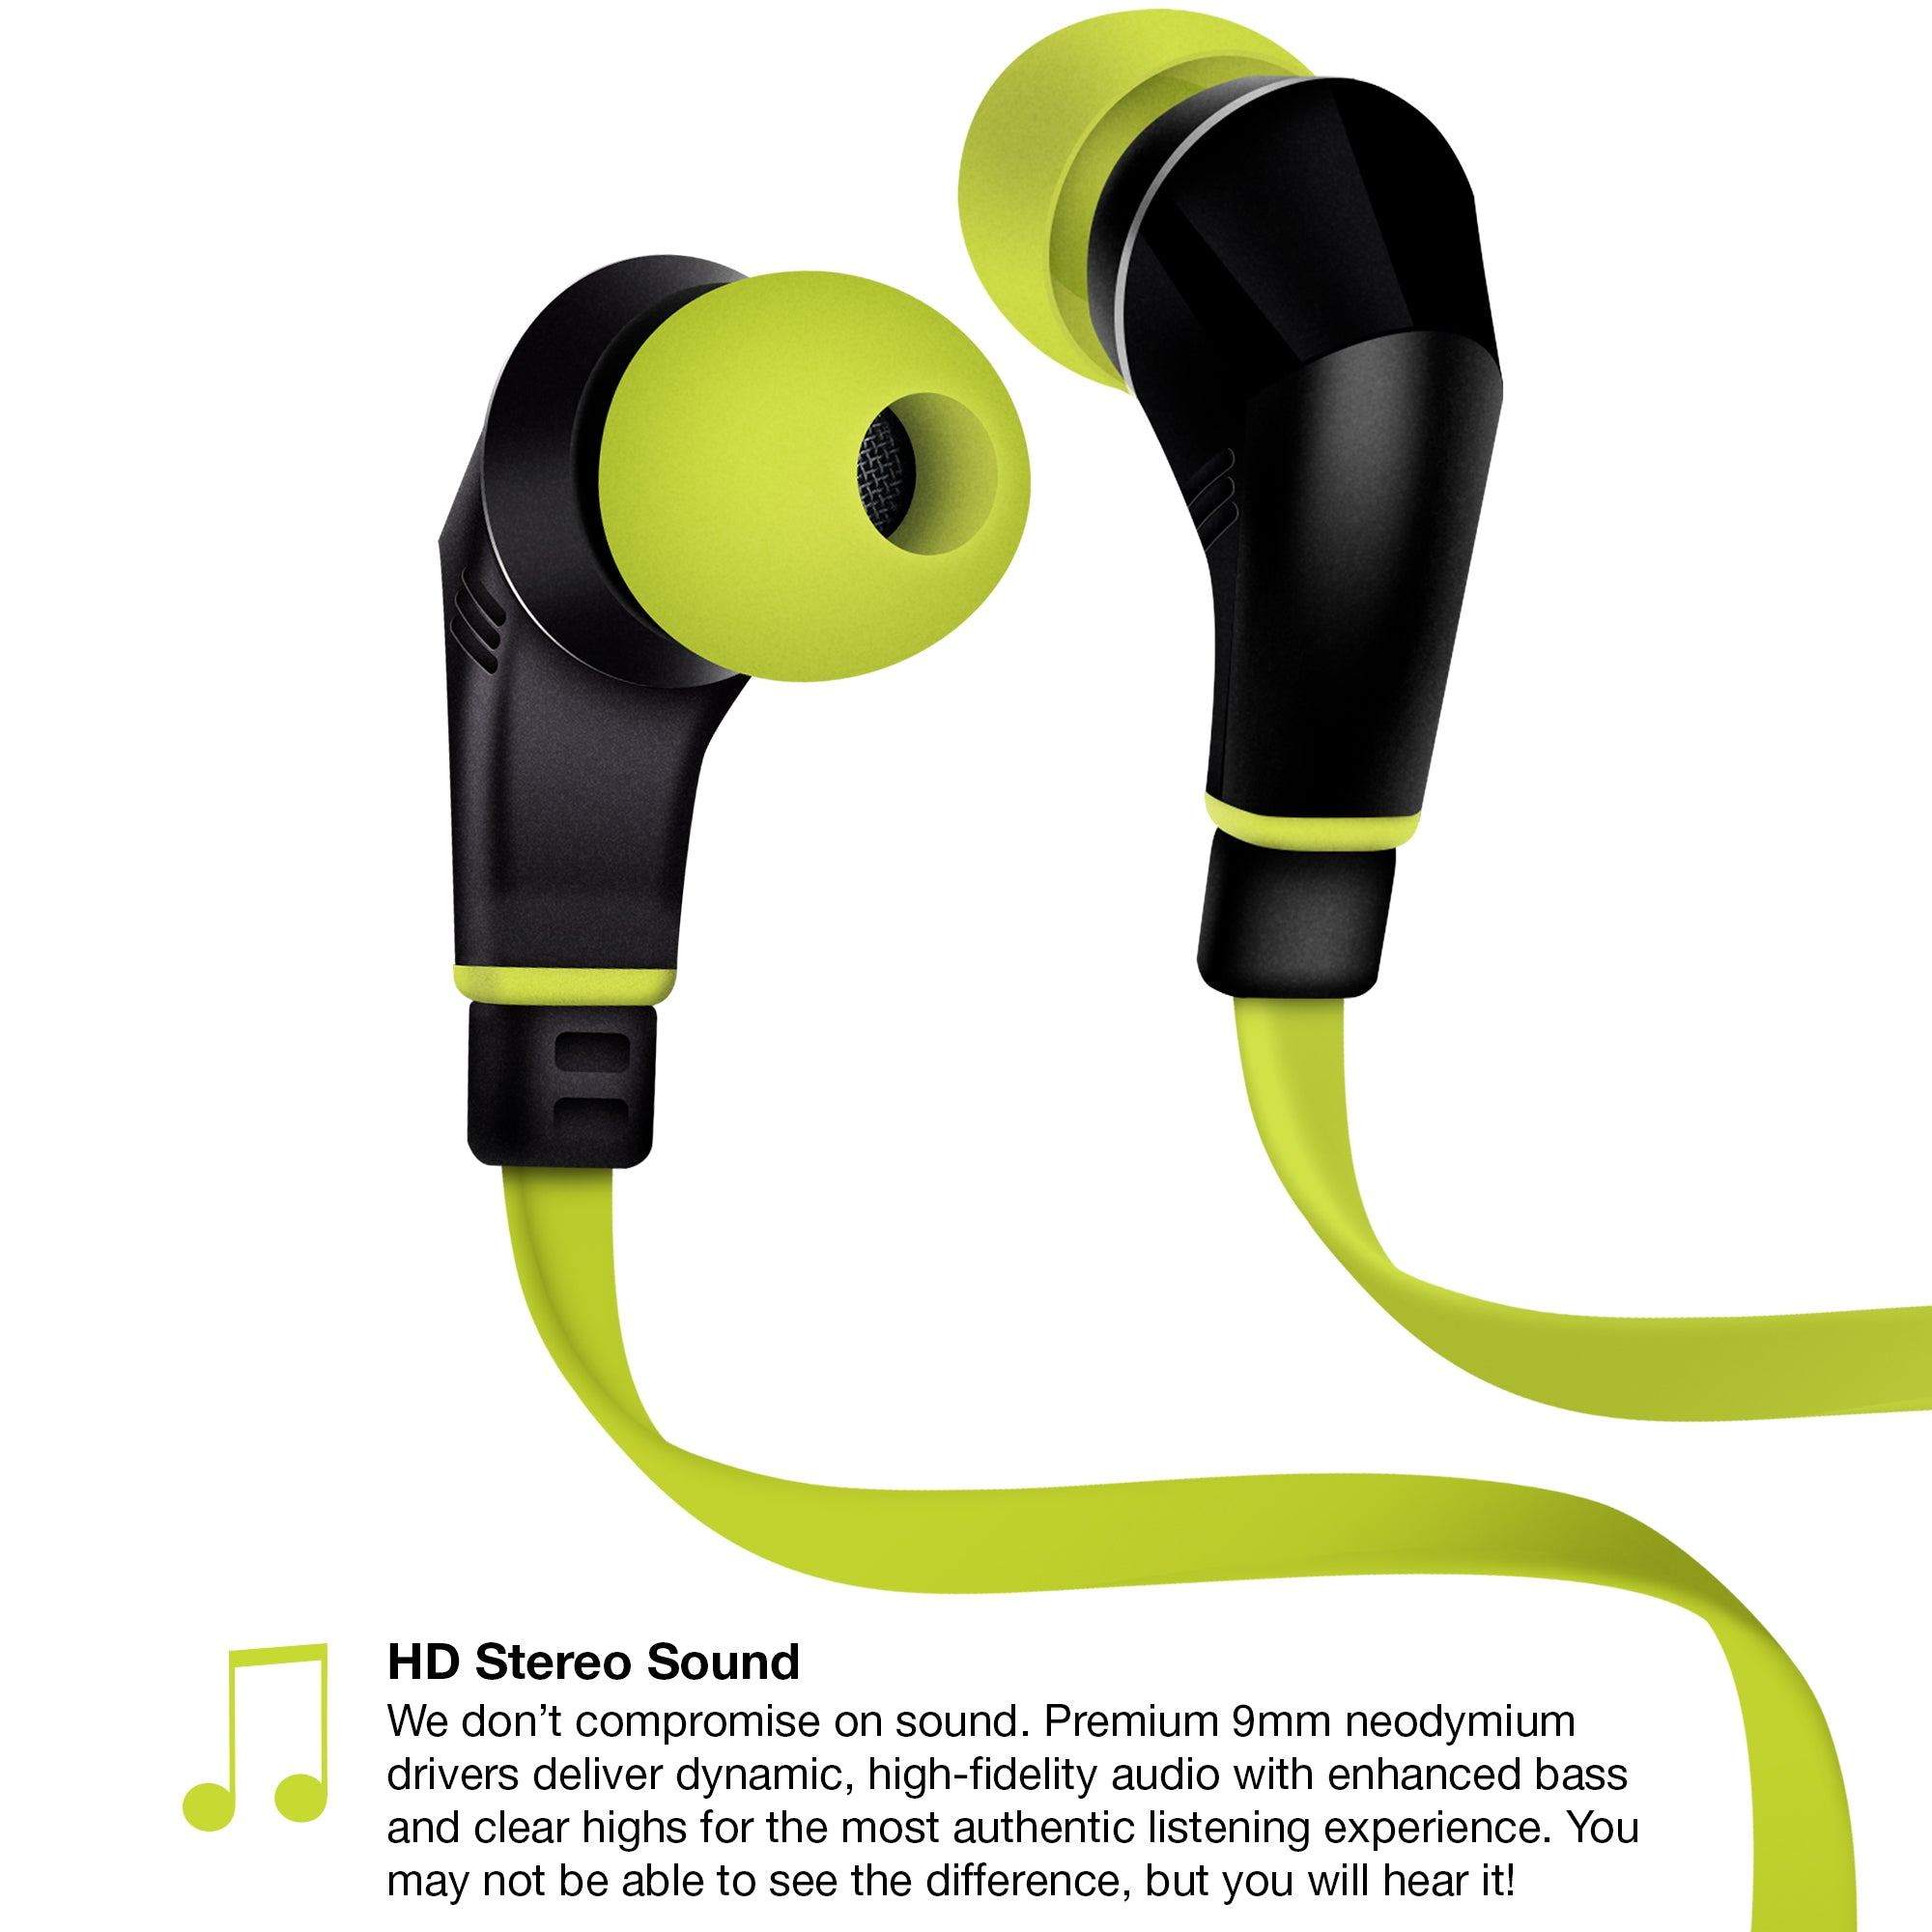 NX80W Wireless Earphones - Lime / Black